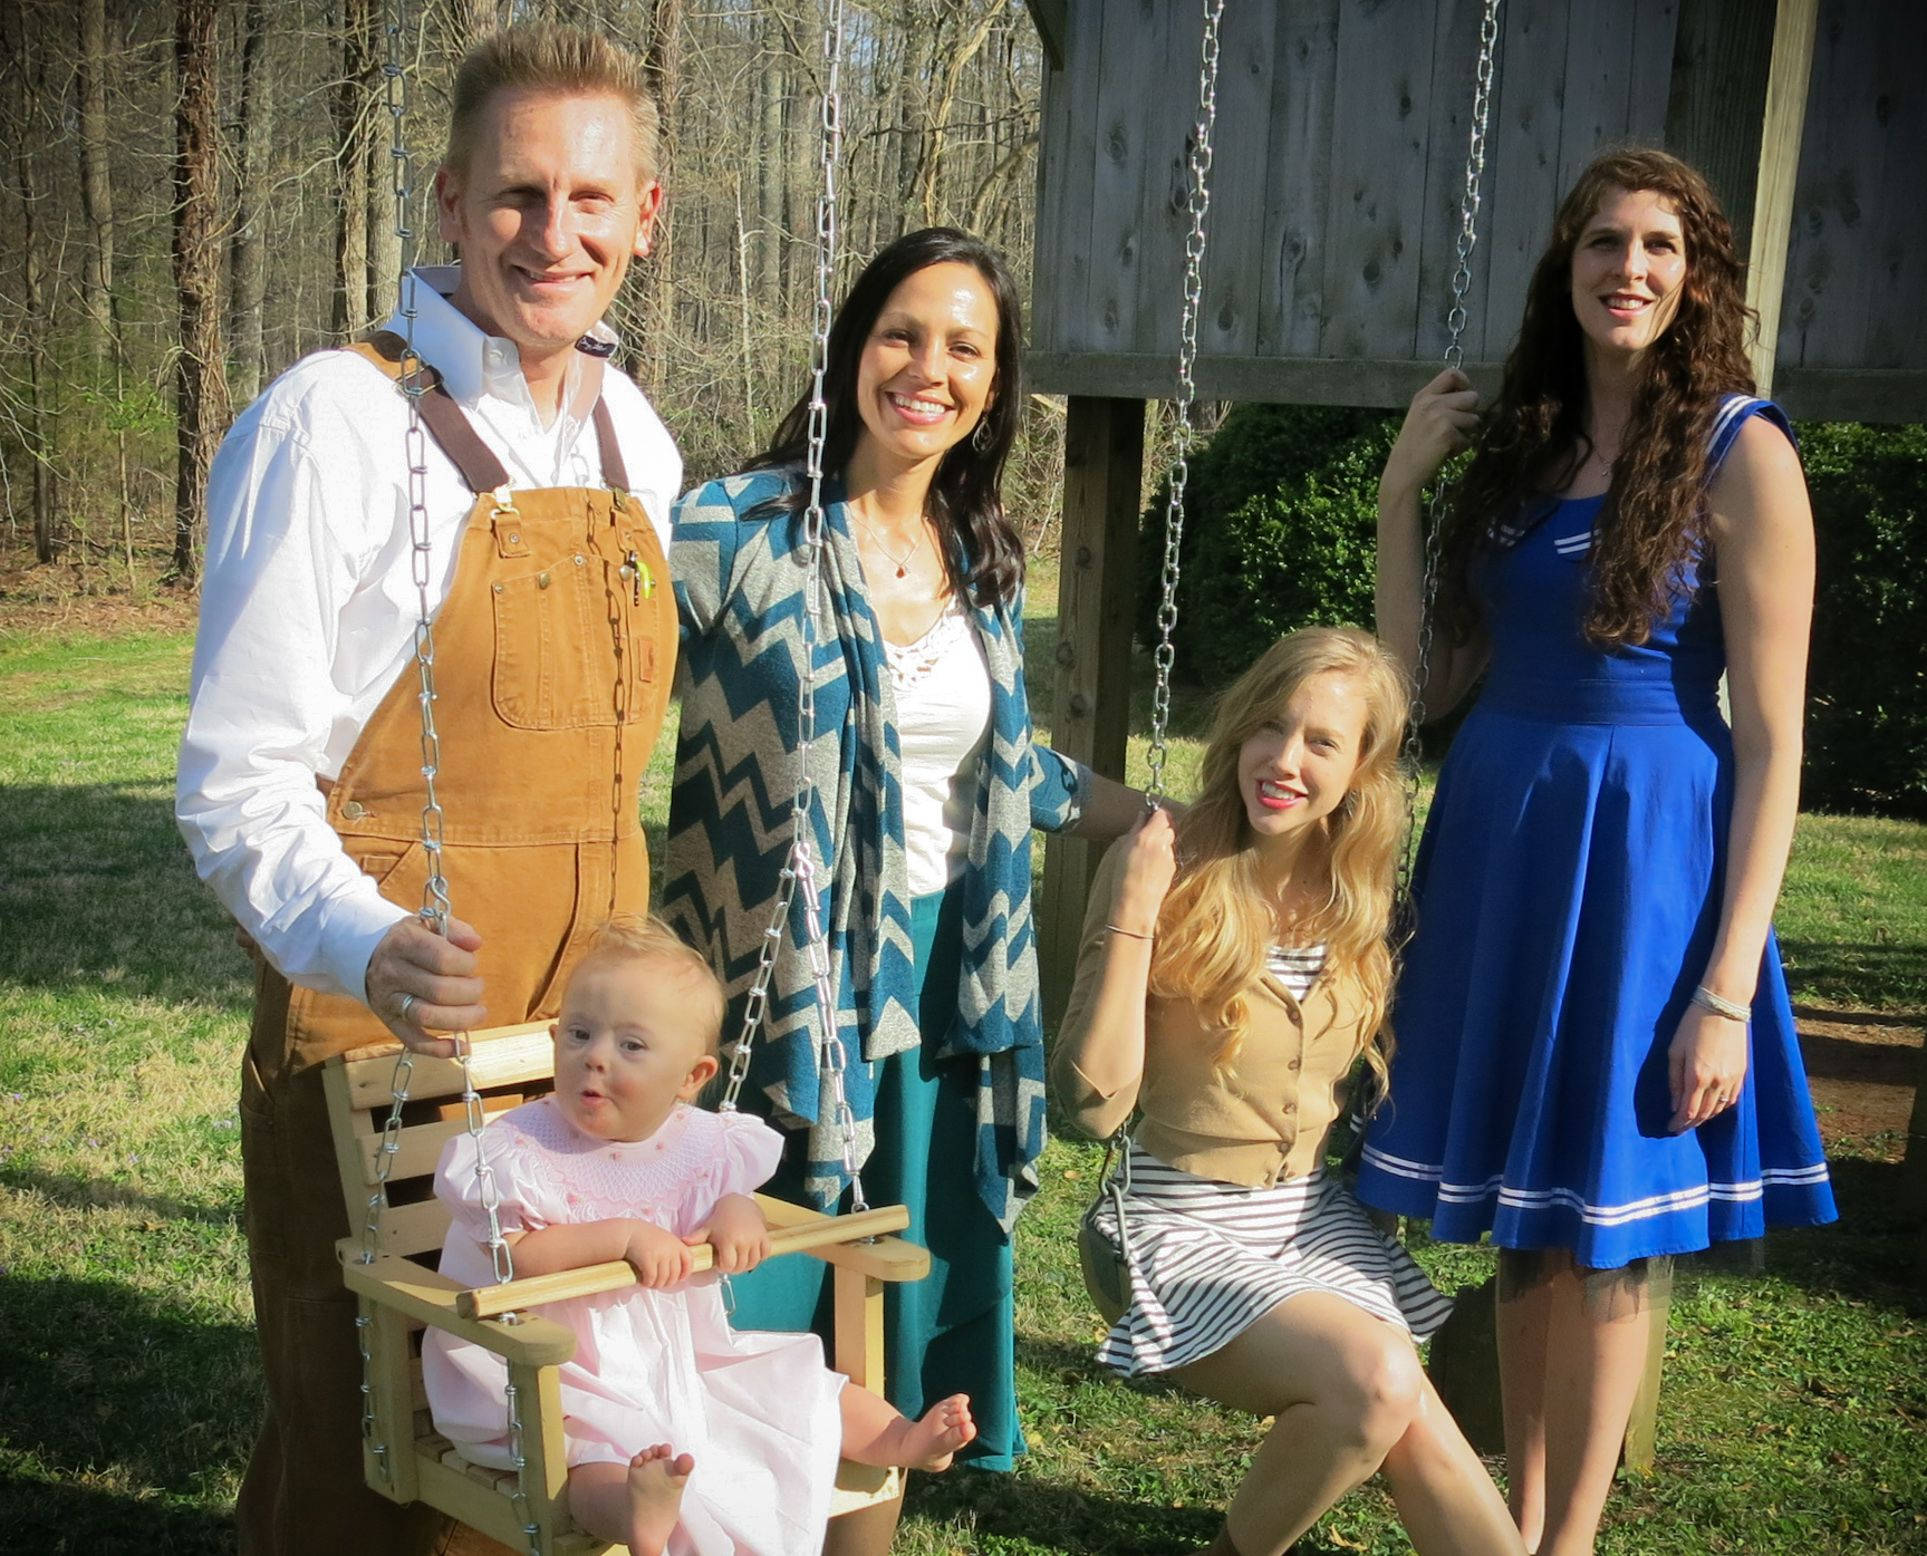 A Year Of Firsts Joey Rory Joey Feek Joey And Rory Feek